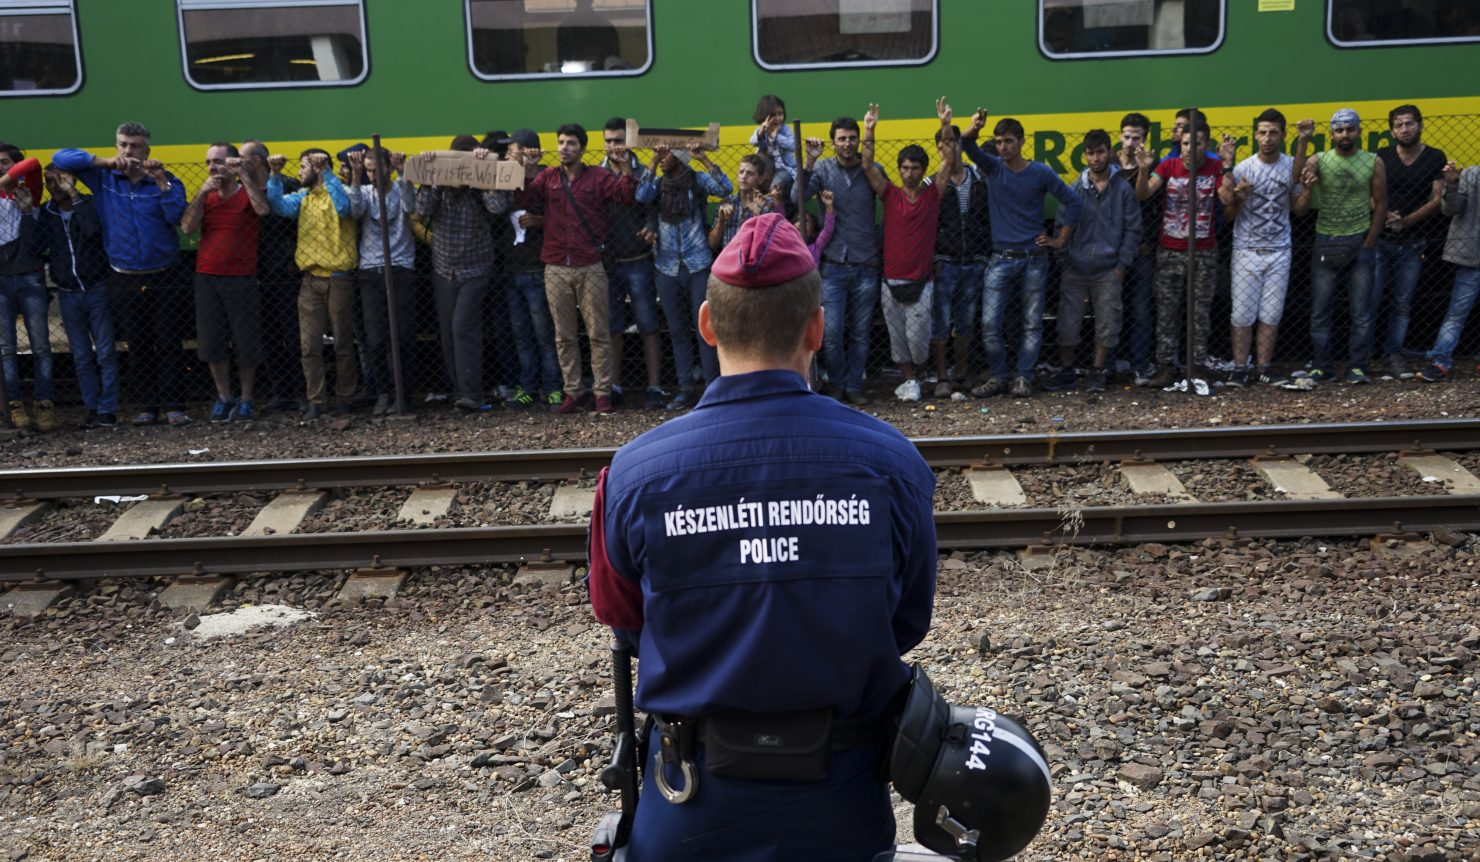 Central European Defence Cooperation (CEDC) is committed to fighting mass migration in Europe